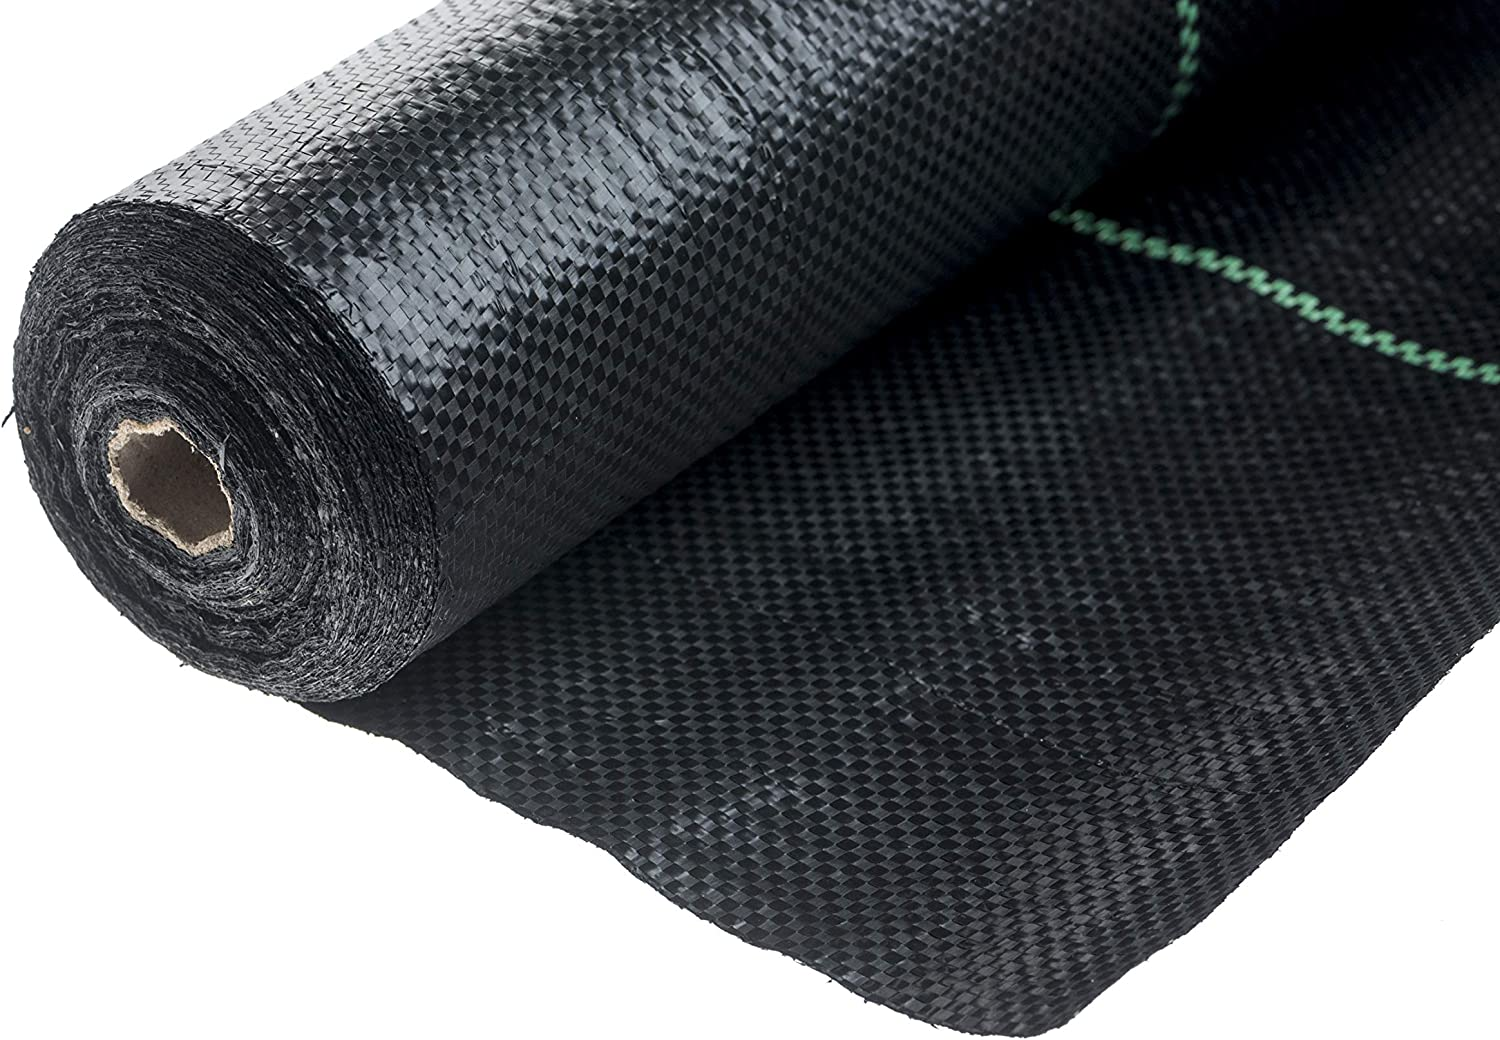 For Gardens Borders and Pathways 1m x 30m Heavy Duty 100gsm Weed Control Fabric Brackit Weed Membrane Roll and Peg Set Flower Beds